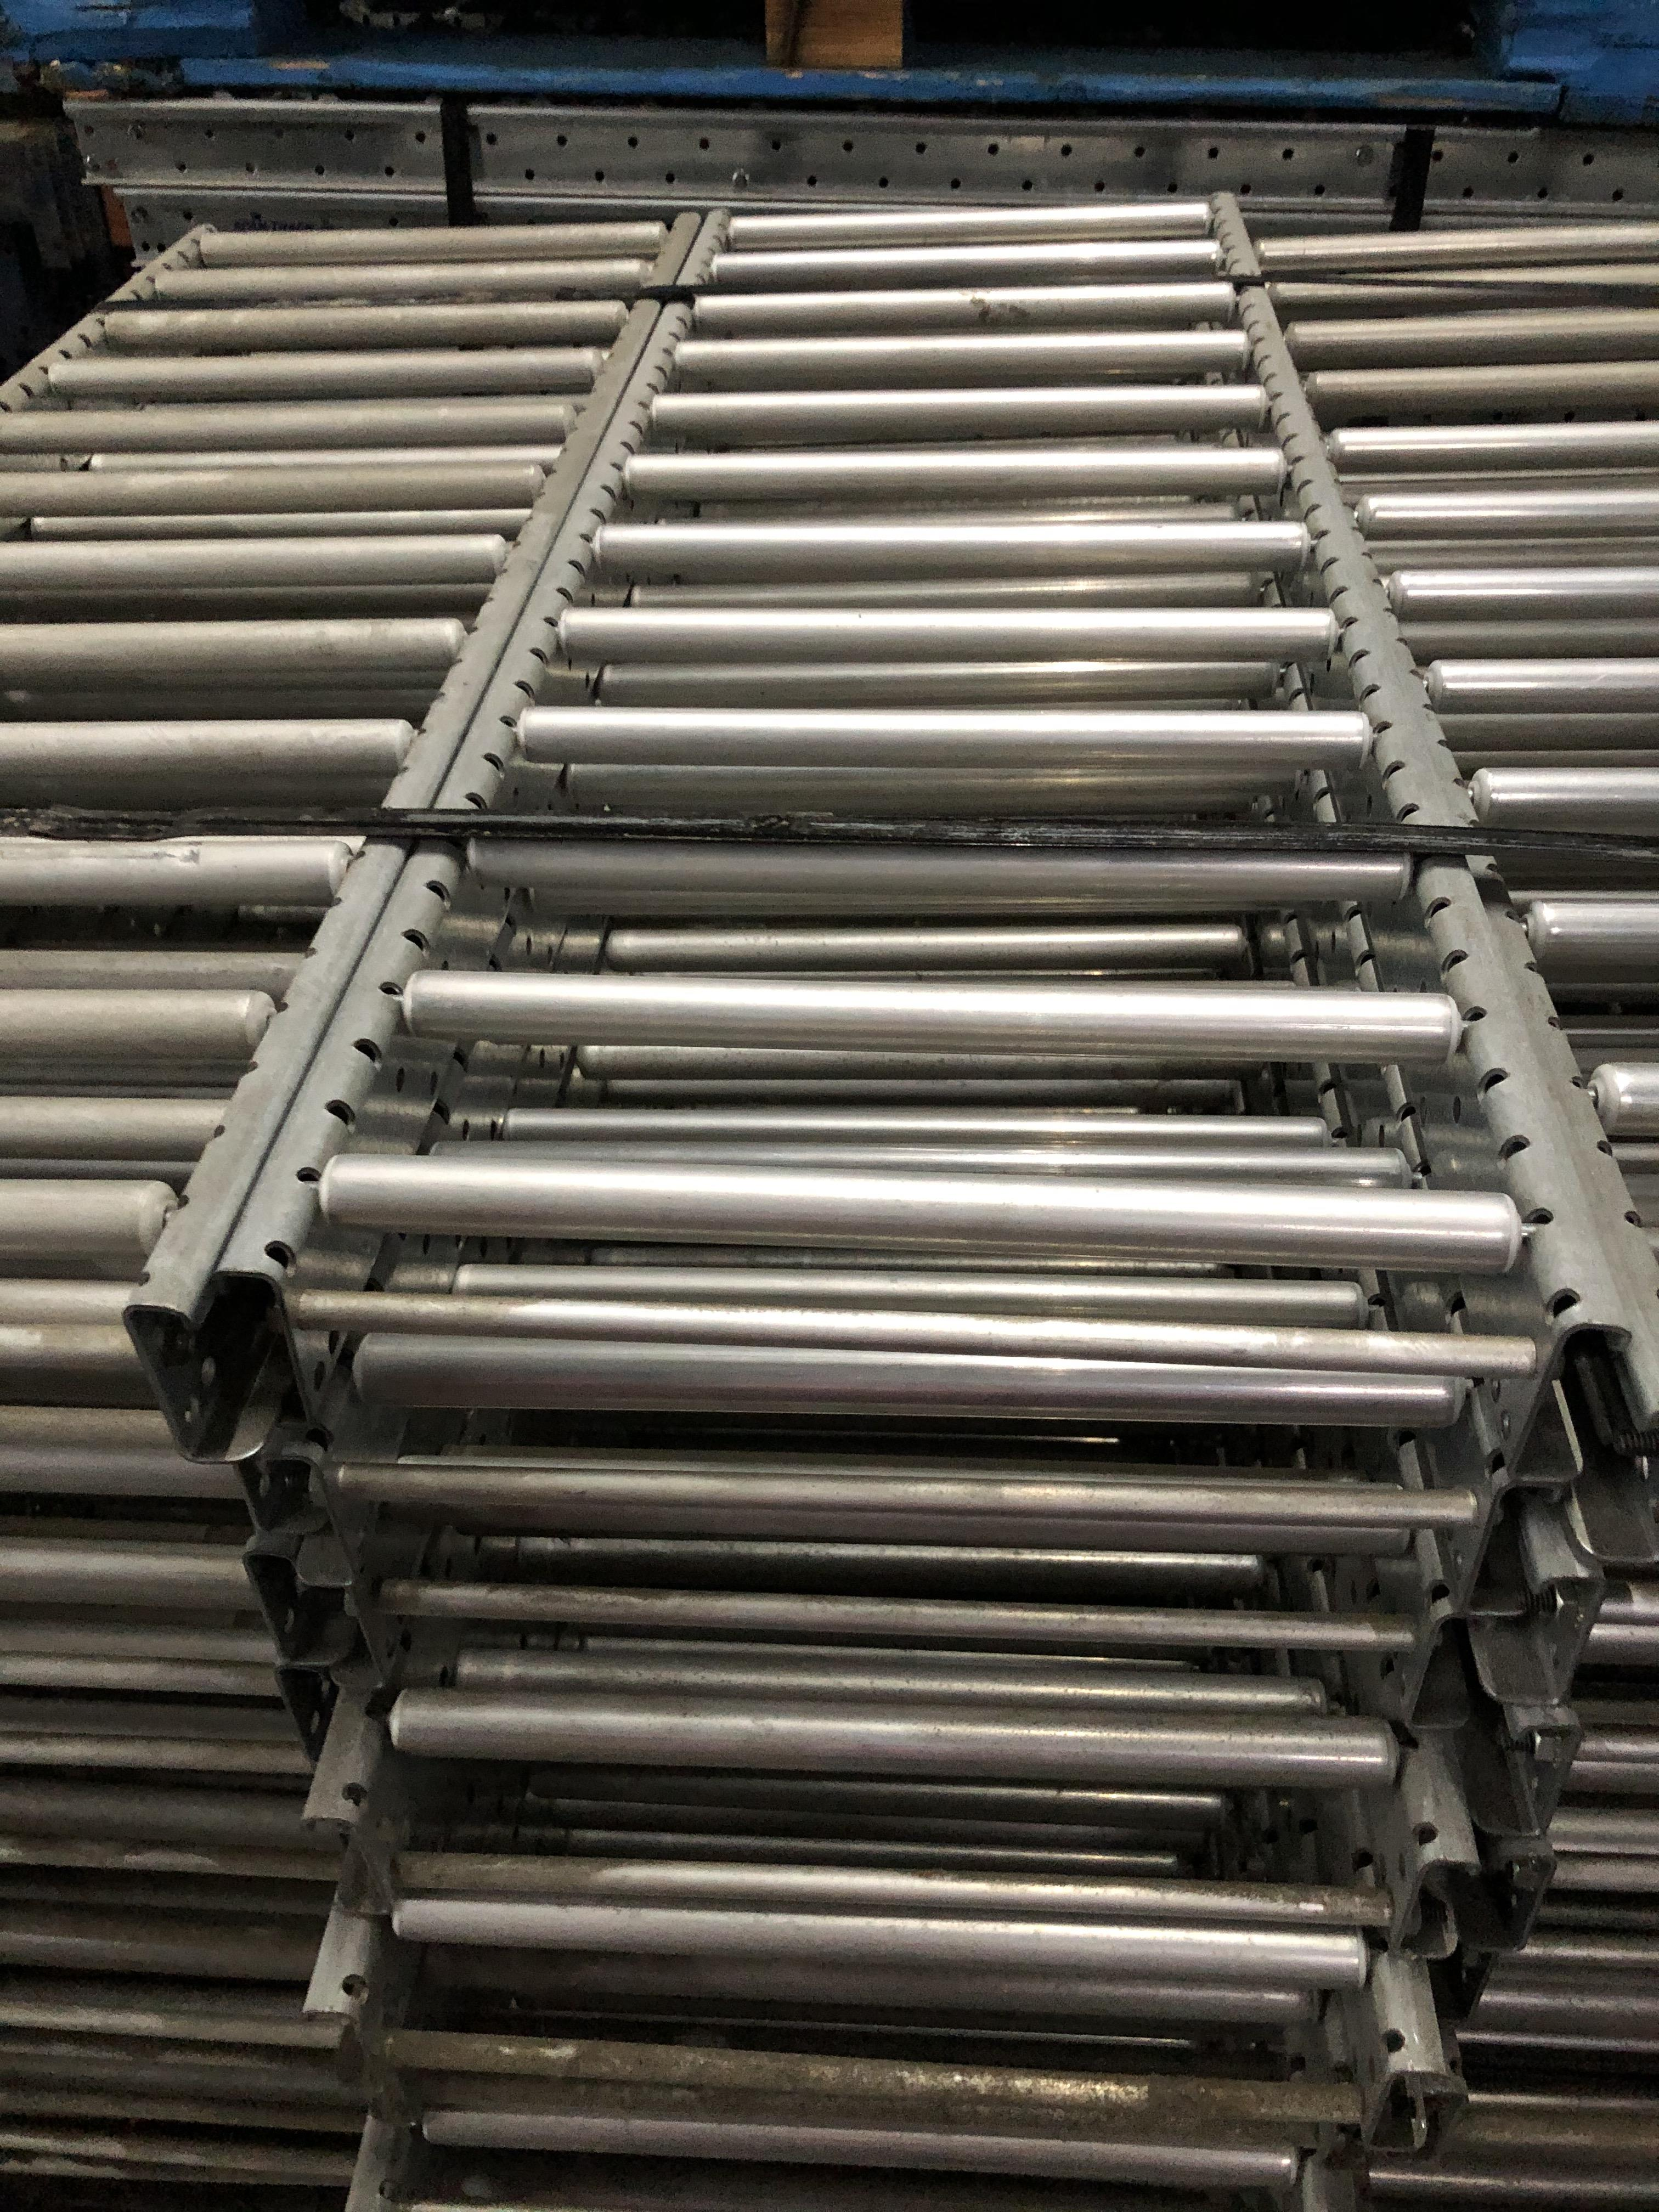 20 PCS OF USED SPAN TRACK - Image 2 of 2